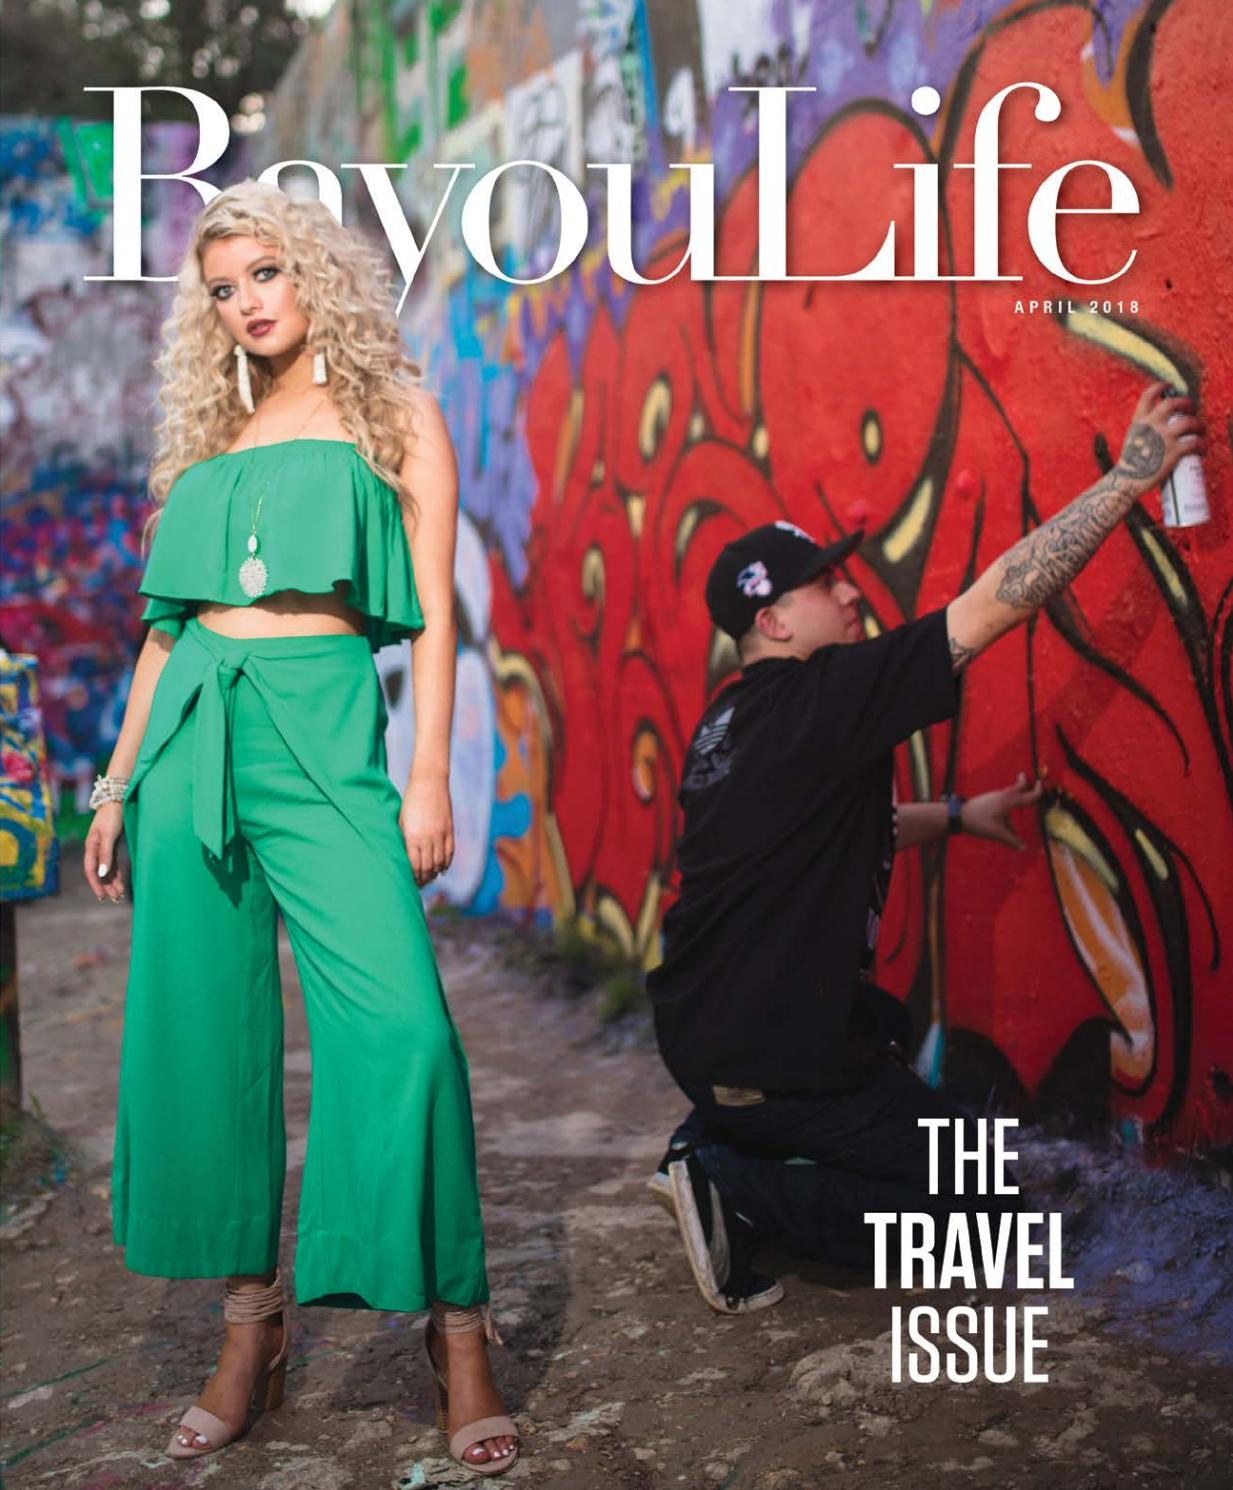 BayouLife Magazine April 2018 by BayouLife Magazine - issuu 074887026